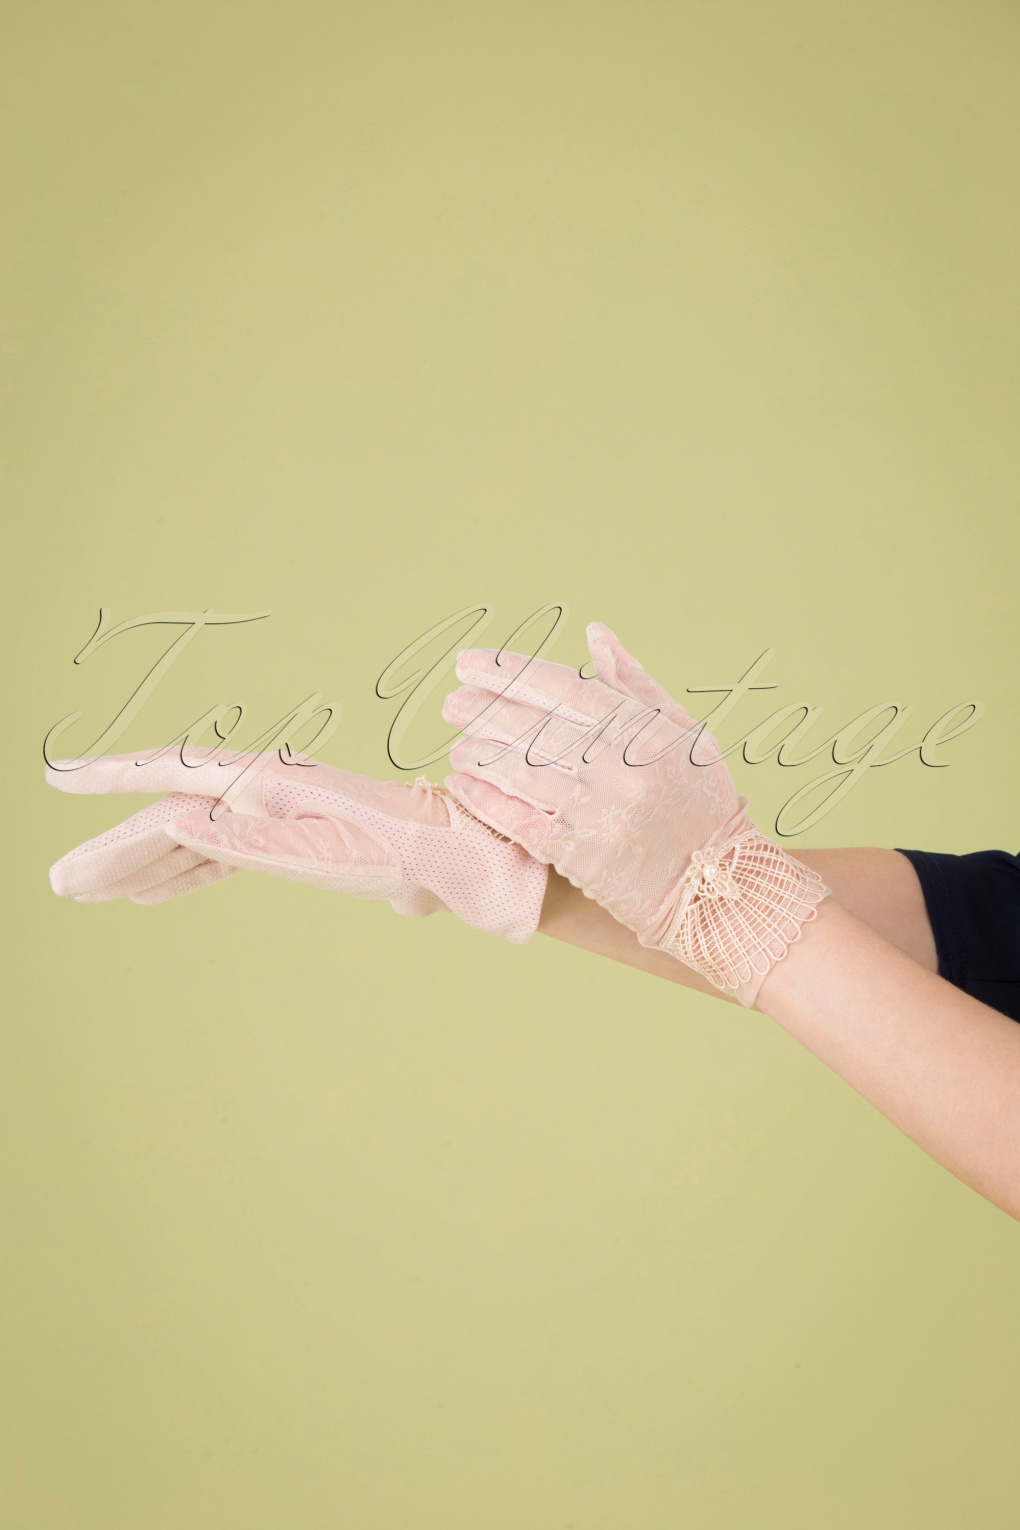 Vintage Style Gloves- Long, Wrist, Evening, Day, Leather, Lace 40s Deco Mesh Wrist Gloves in Dusty Pink £26.98 AT vintagedancer.com